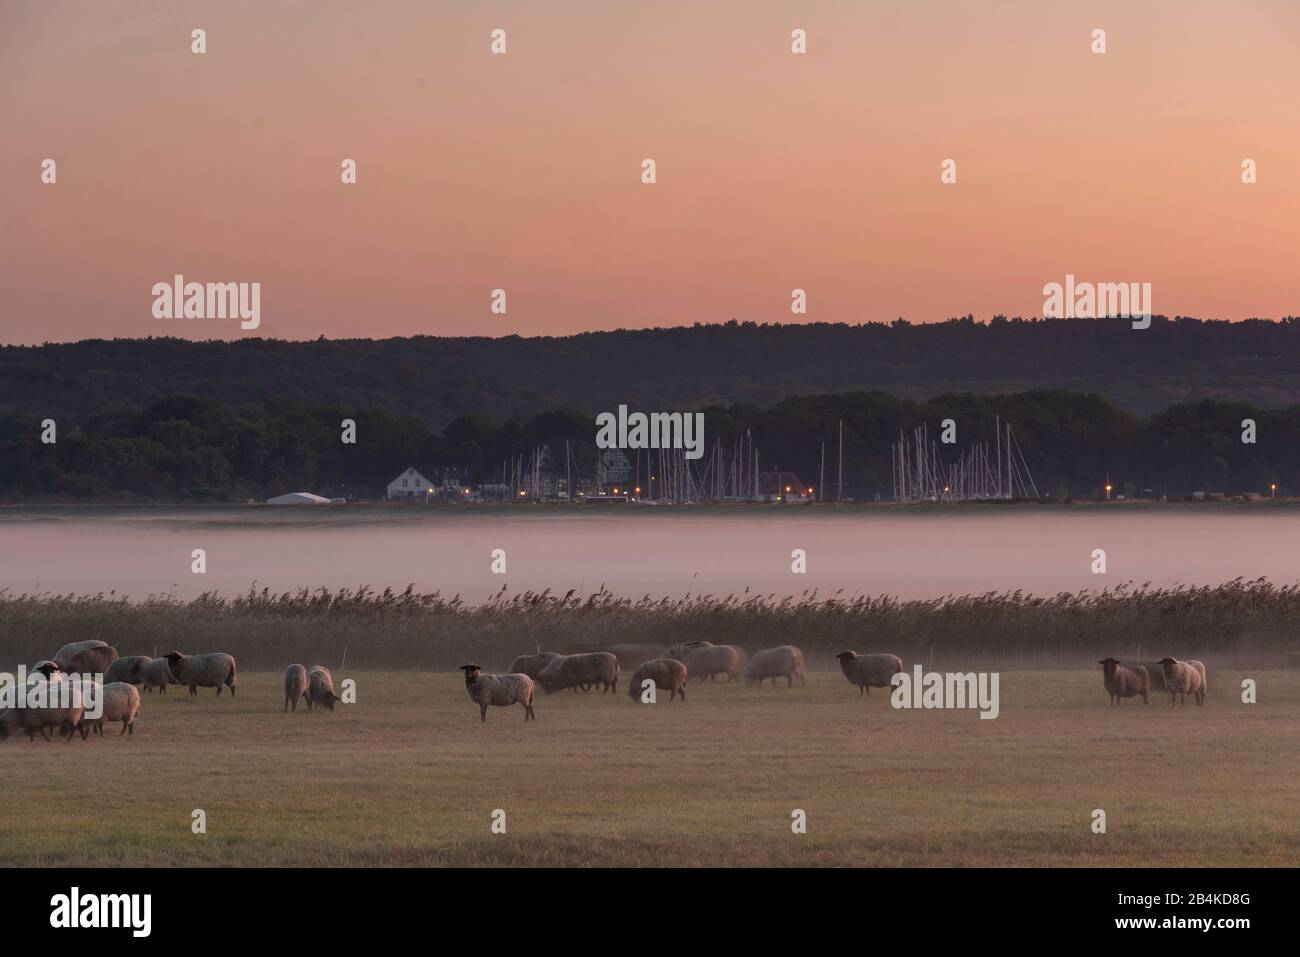 Germany, Mecklenburg-Vorpommern, Hiddensee, view of a meadow with sheep, fog veil, harbor monastery, sailboats. Stock Photo